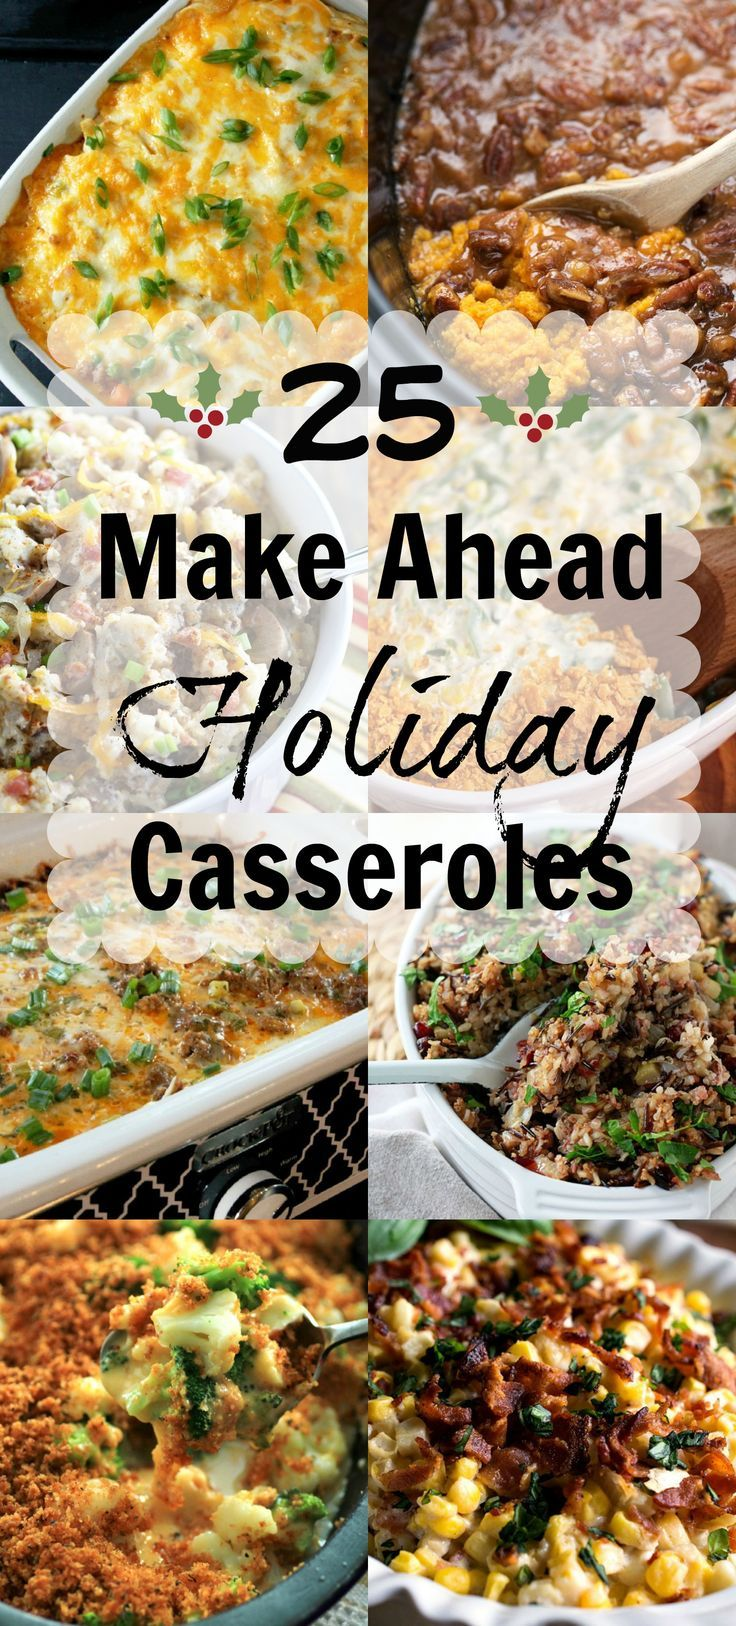 25 Make Ahead Holiday Casseroles by Noshing With The Nolands, perfect casseroles that will take your from Thanksgiving to Christmas and beyond.